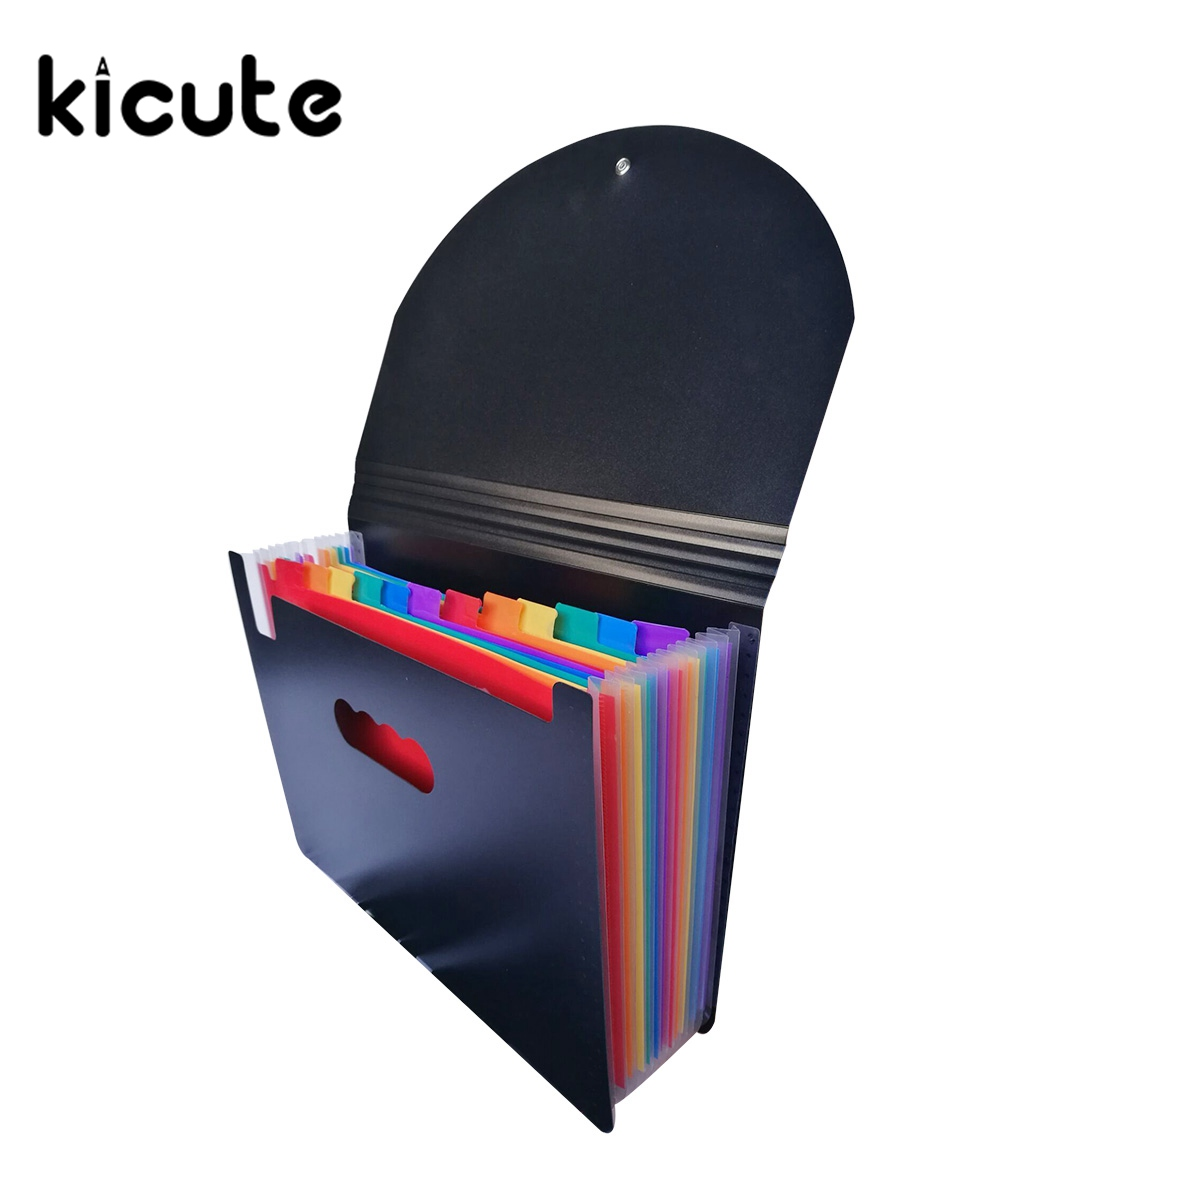 Kicute 1pcs High Quality Waterproof Rainbow Color 12 Layers File Folders Rainbow Document Bag Office Stationery Supplies Gifts a4 leather discolor manager file folder restaurant menu cover custom portfolio folders office portable pu document report cover